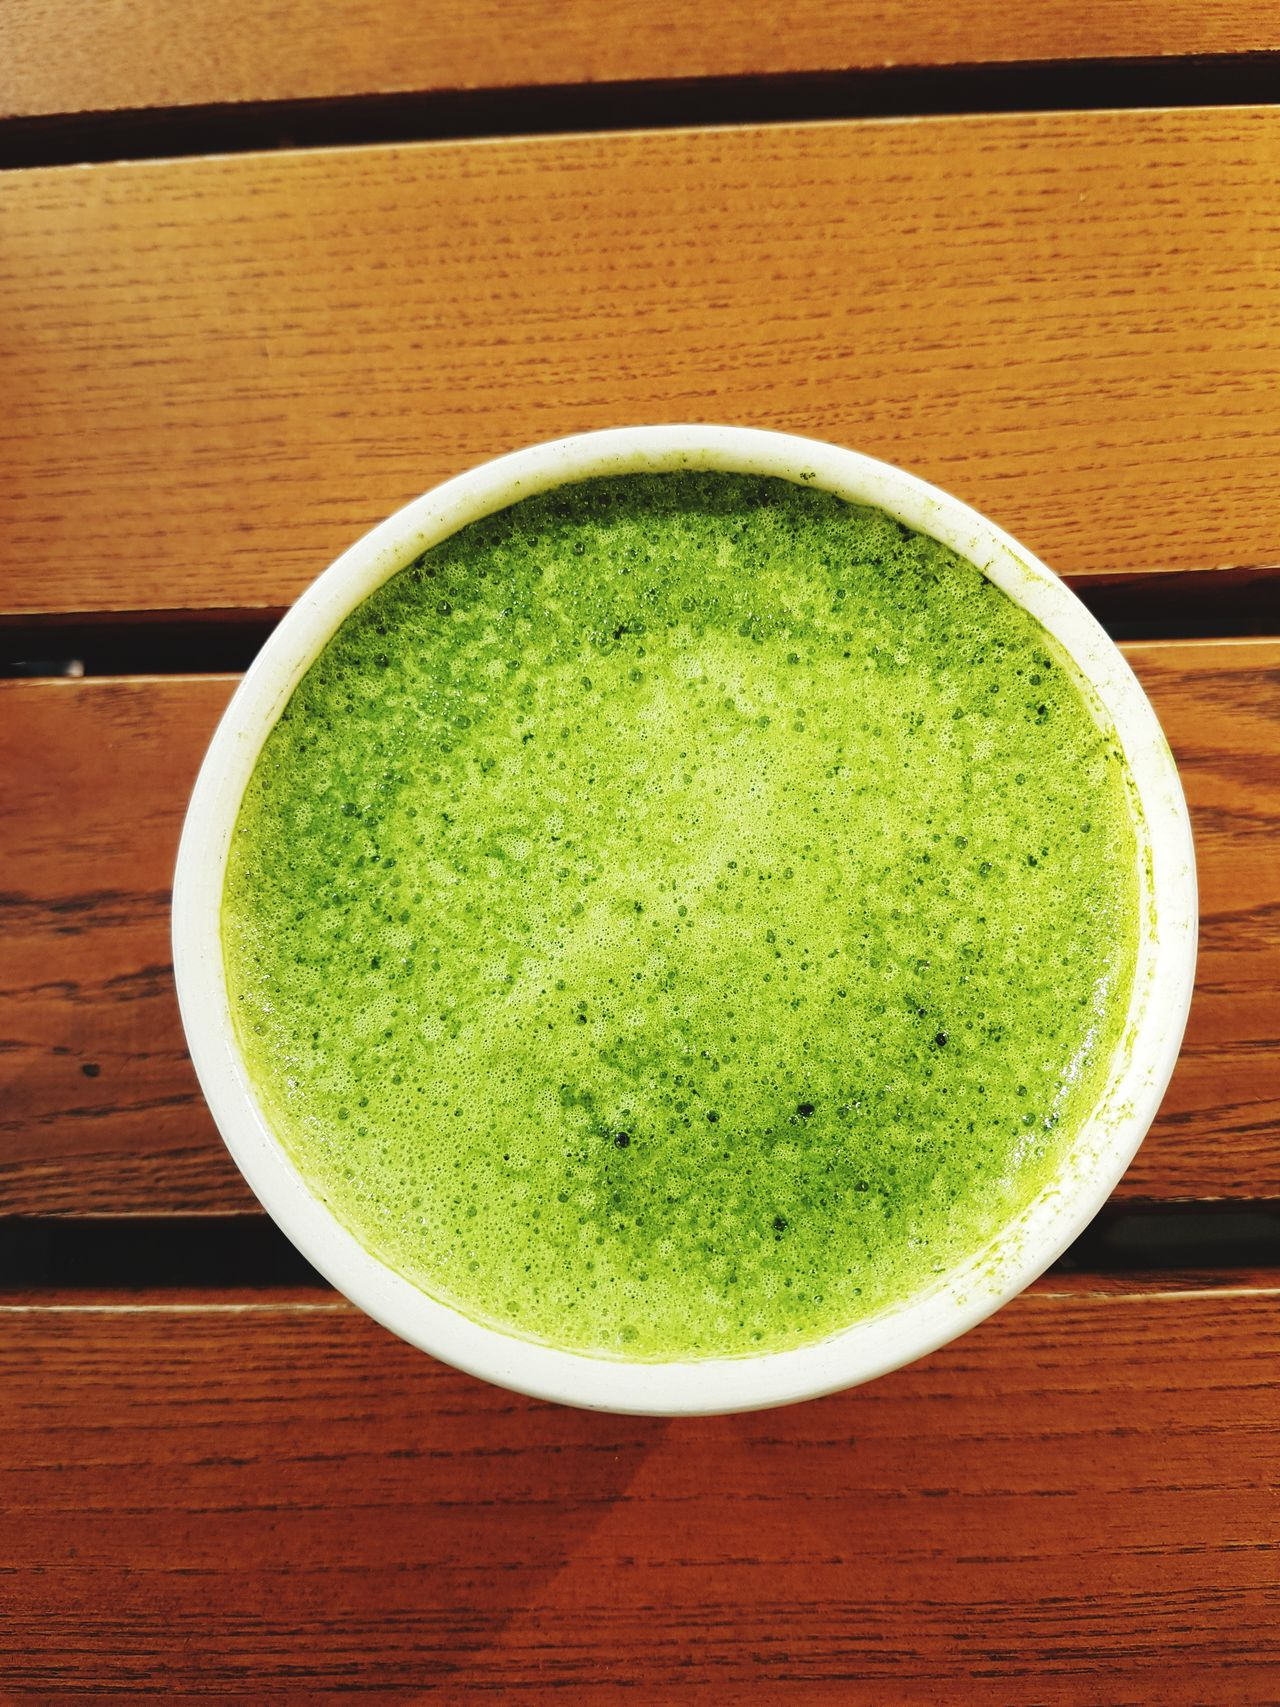 Matcha Latte Matchagreentea Green Color Matcha Tea Cultures Tea Ceremony Healthcare And Medicine Green Tea Wood - Material Drink Healthy Lifestyle Indoors  Freshness Frothy Drink No People Healthy Eating Close-up